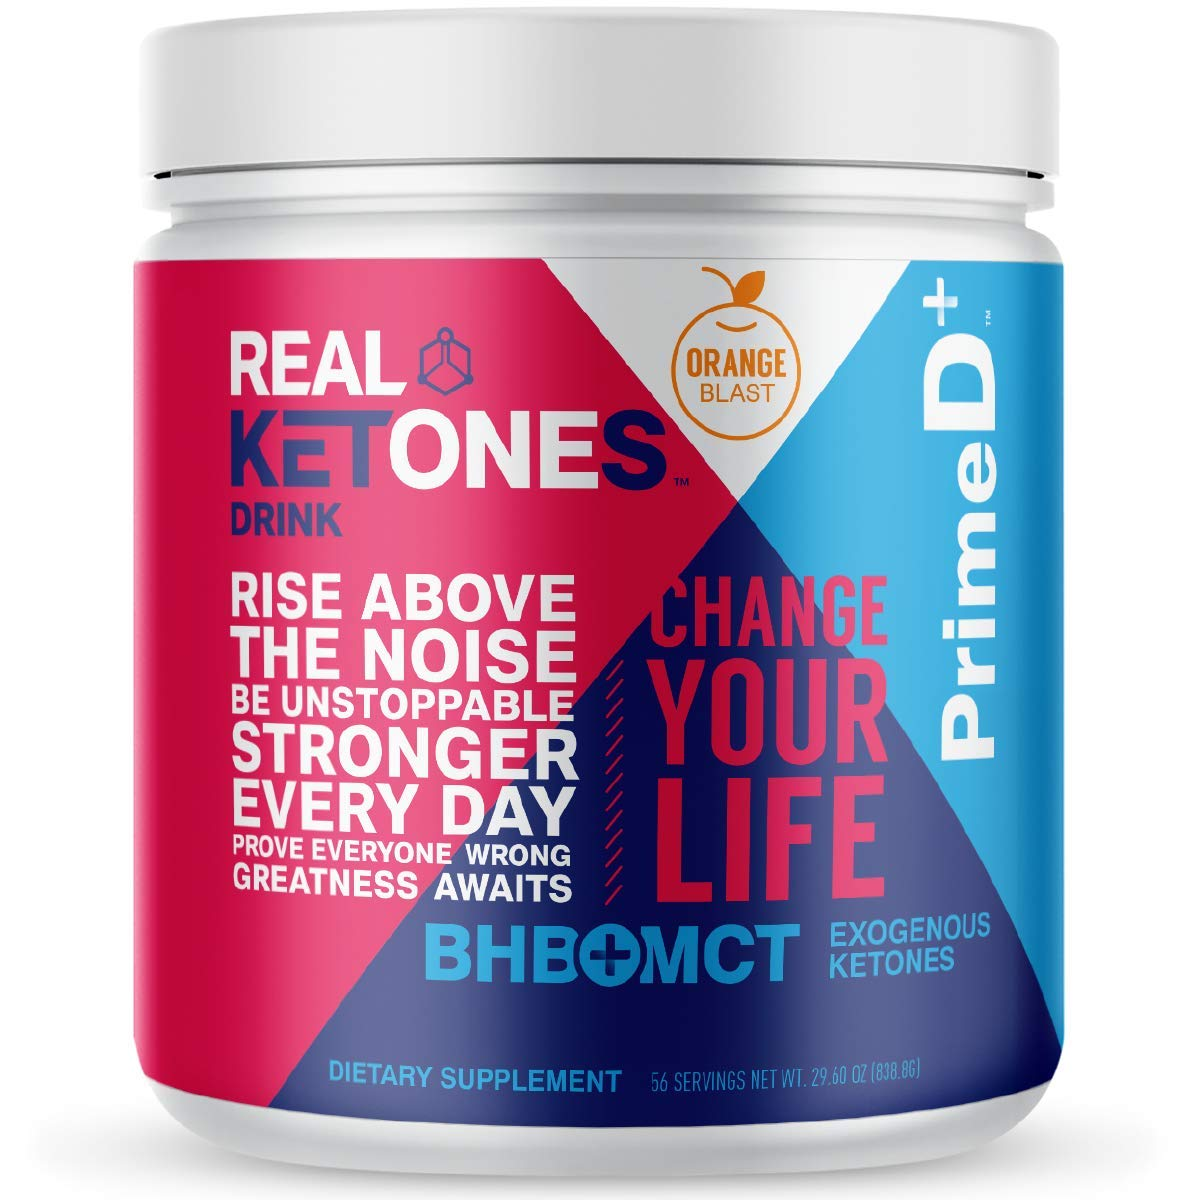 Real Ketones Prime D+ BHB (Beta-Hydroxybuterate) and MCT Exogenous Ketone Powder Supports Ketogenic Diet, Energy Boost, Mental Clarity (Orange Blast) (56 Serving)